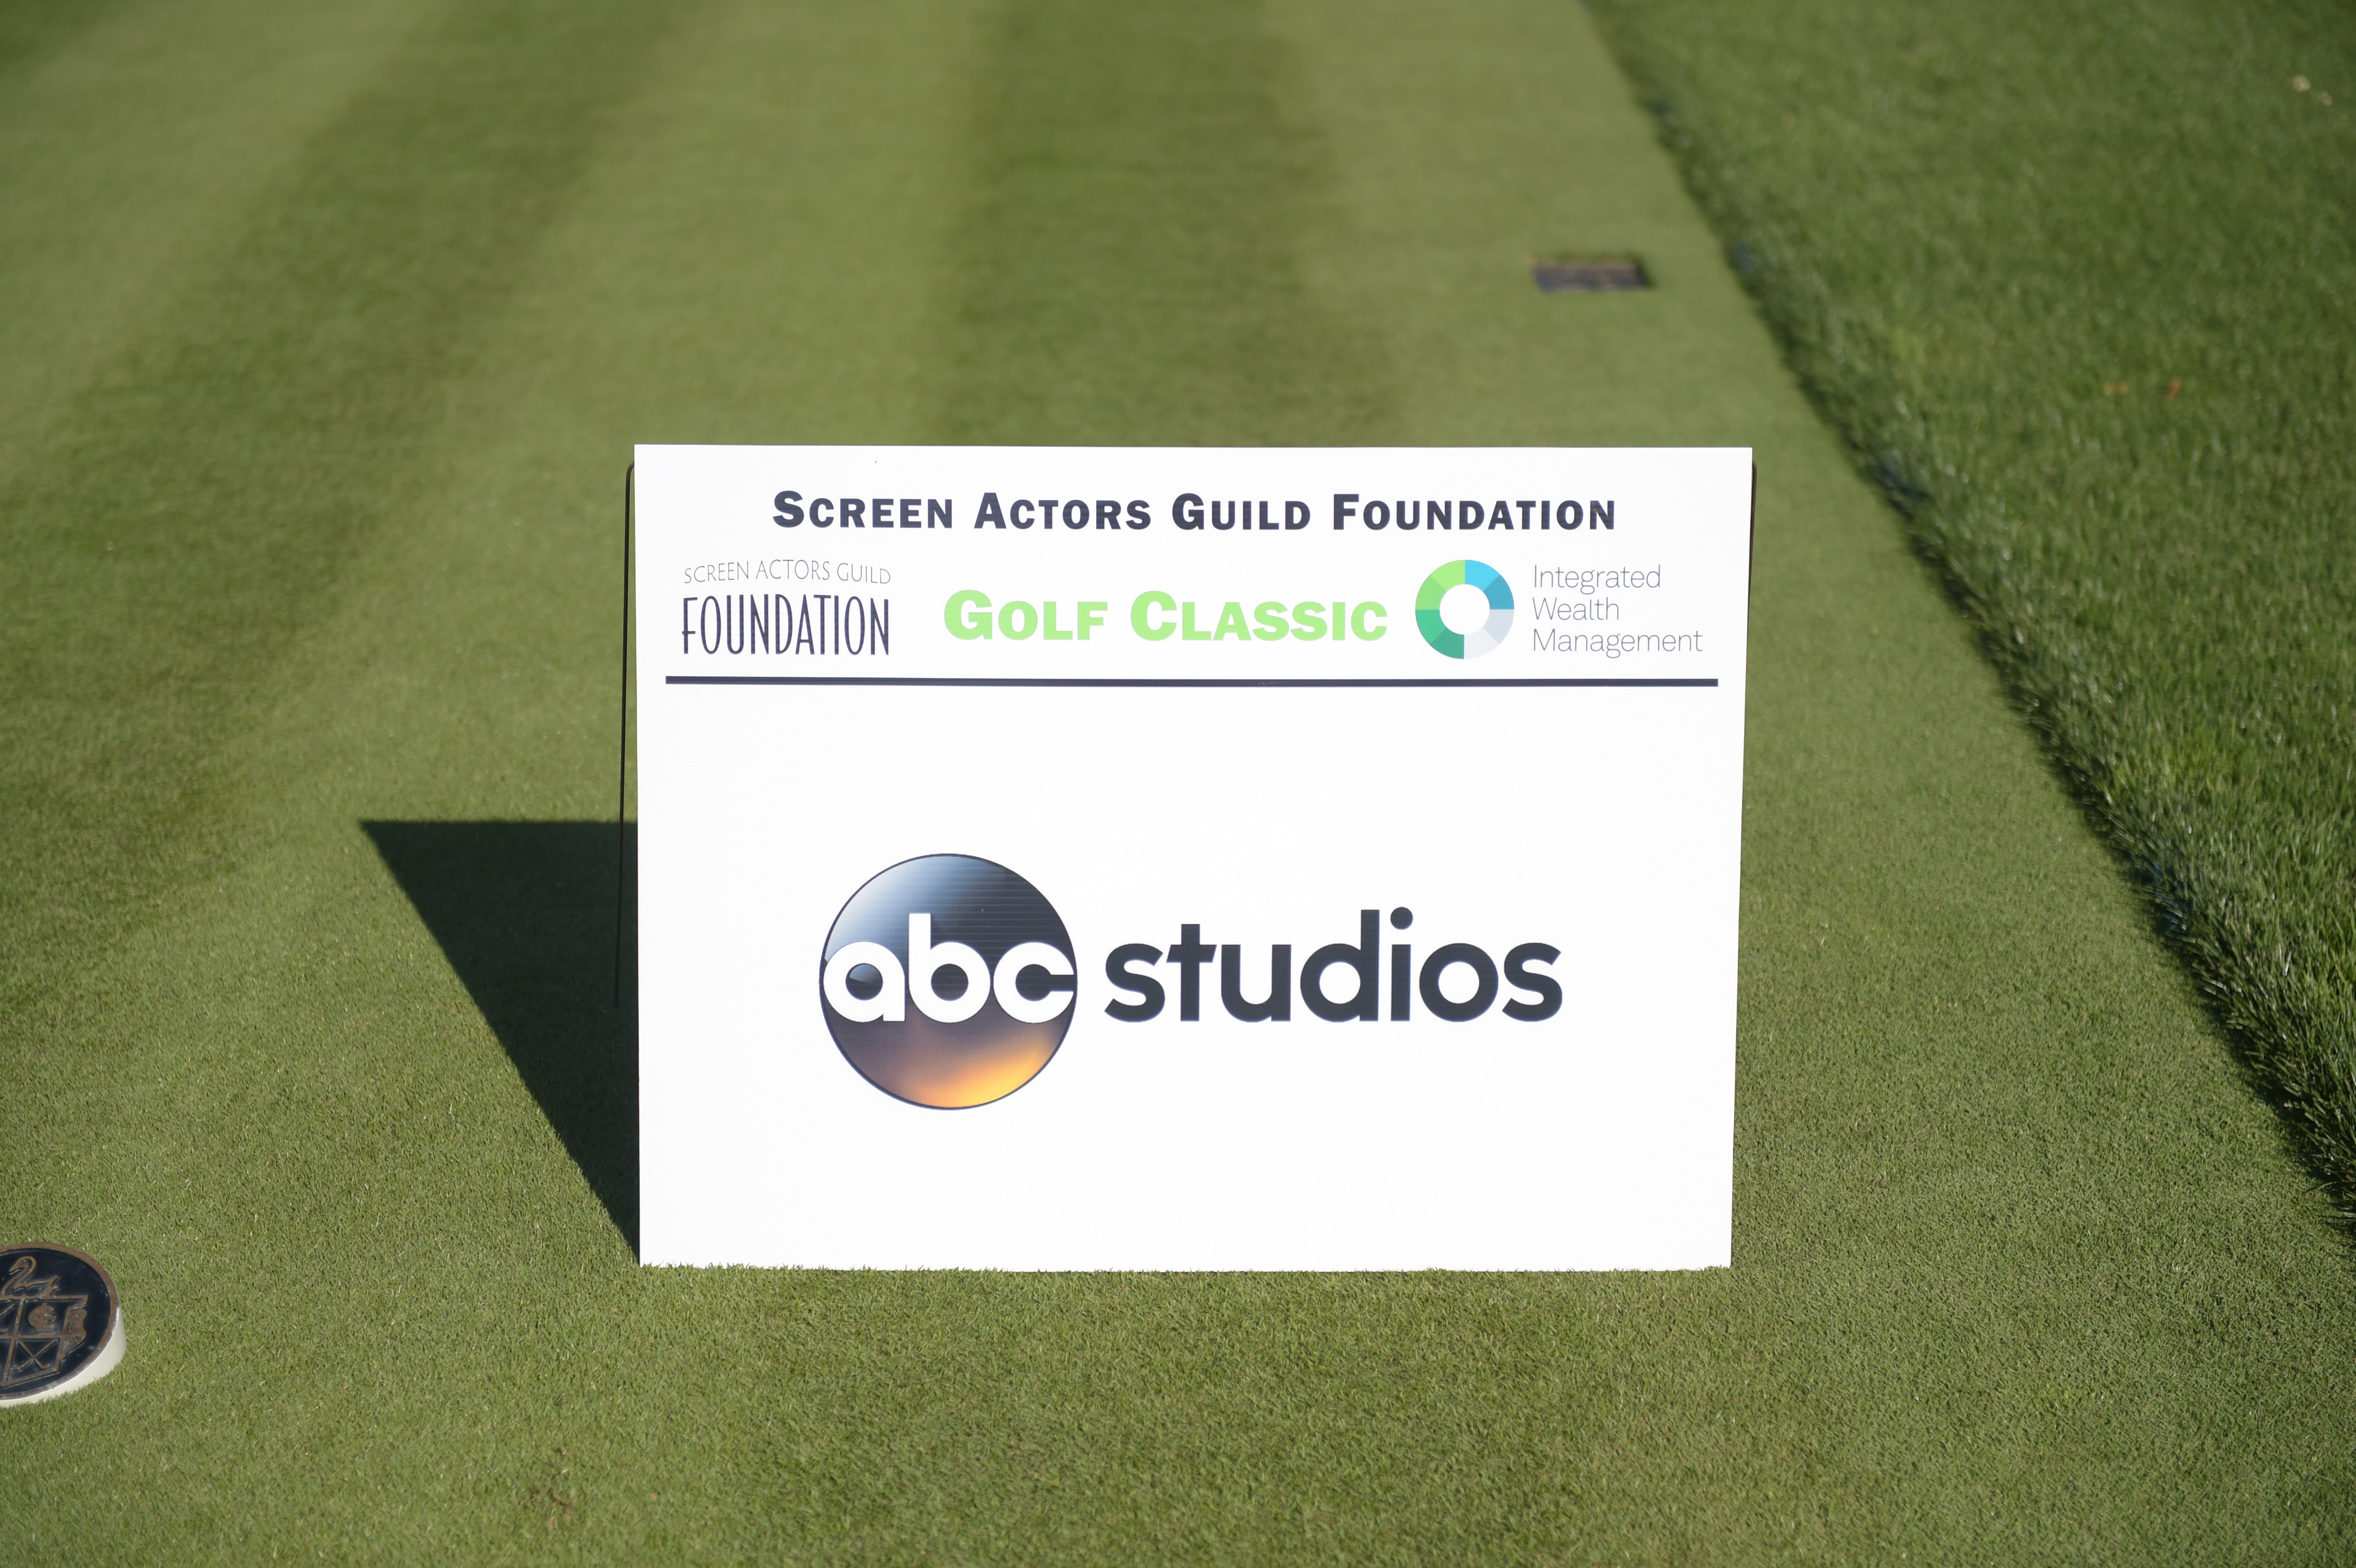 ABC Studios sponsors The Screen Actors Guild Foundation's 6th Annual Los Angeles Golf Classic. (Photo by Jason Kempin/Getty Images for The Screen Actors Guild Foundation)